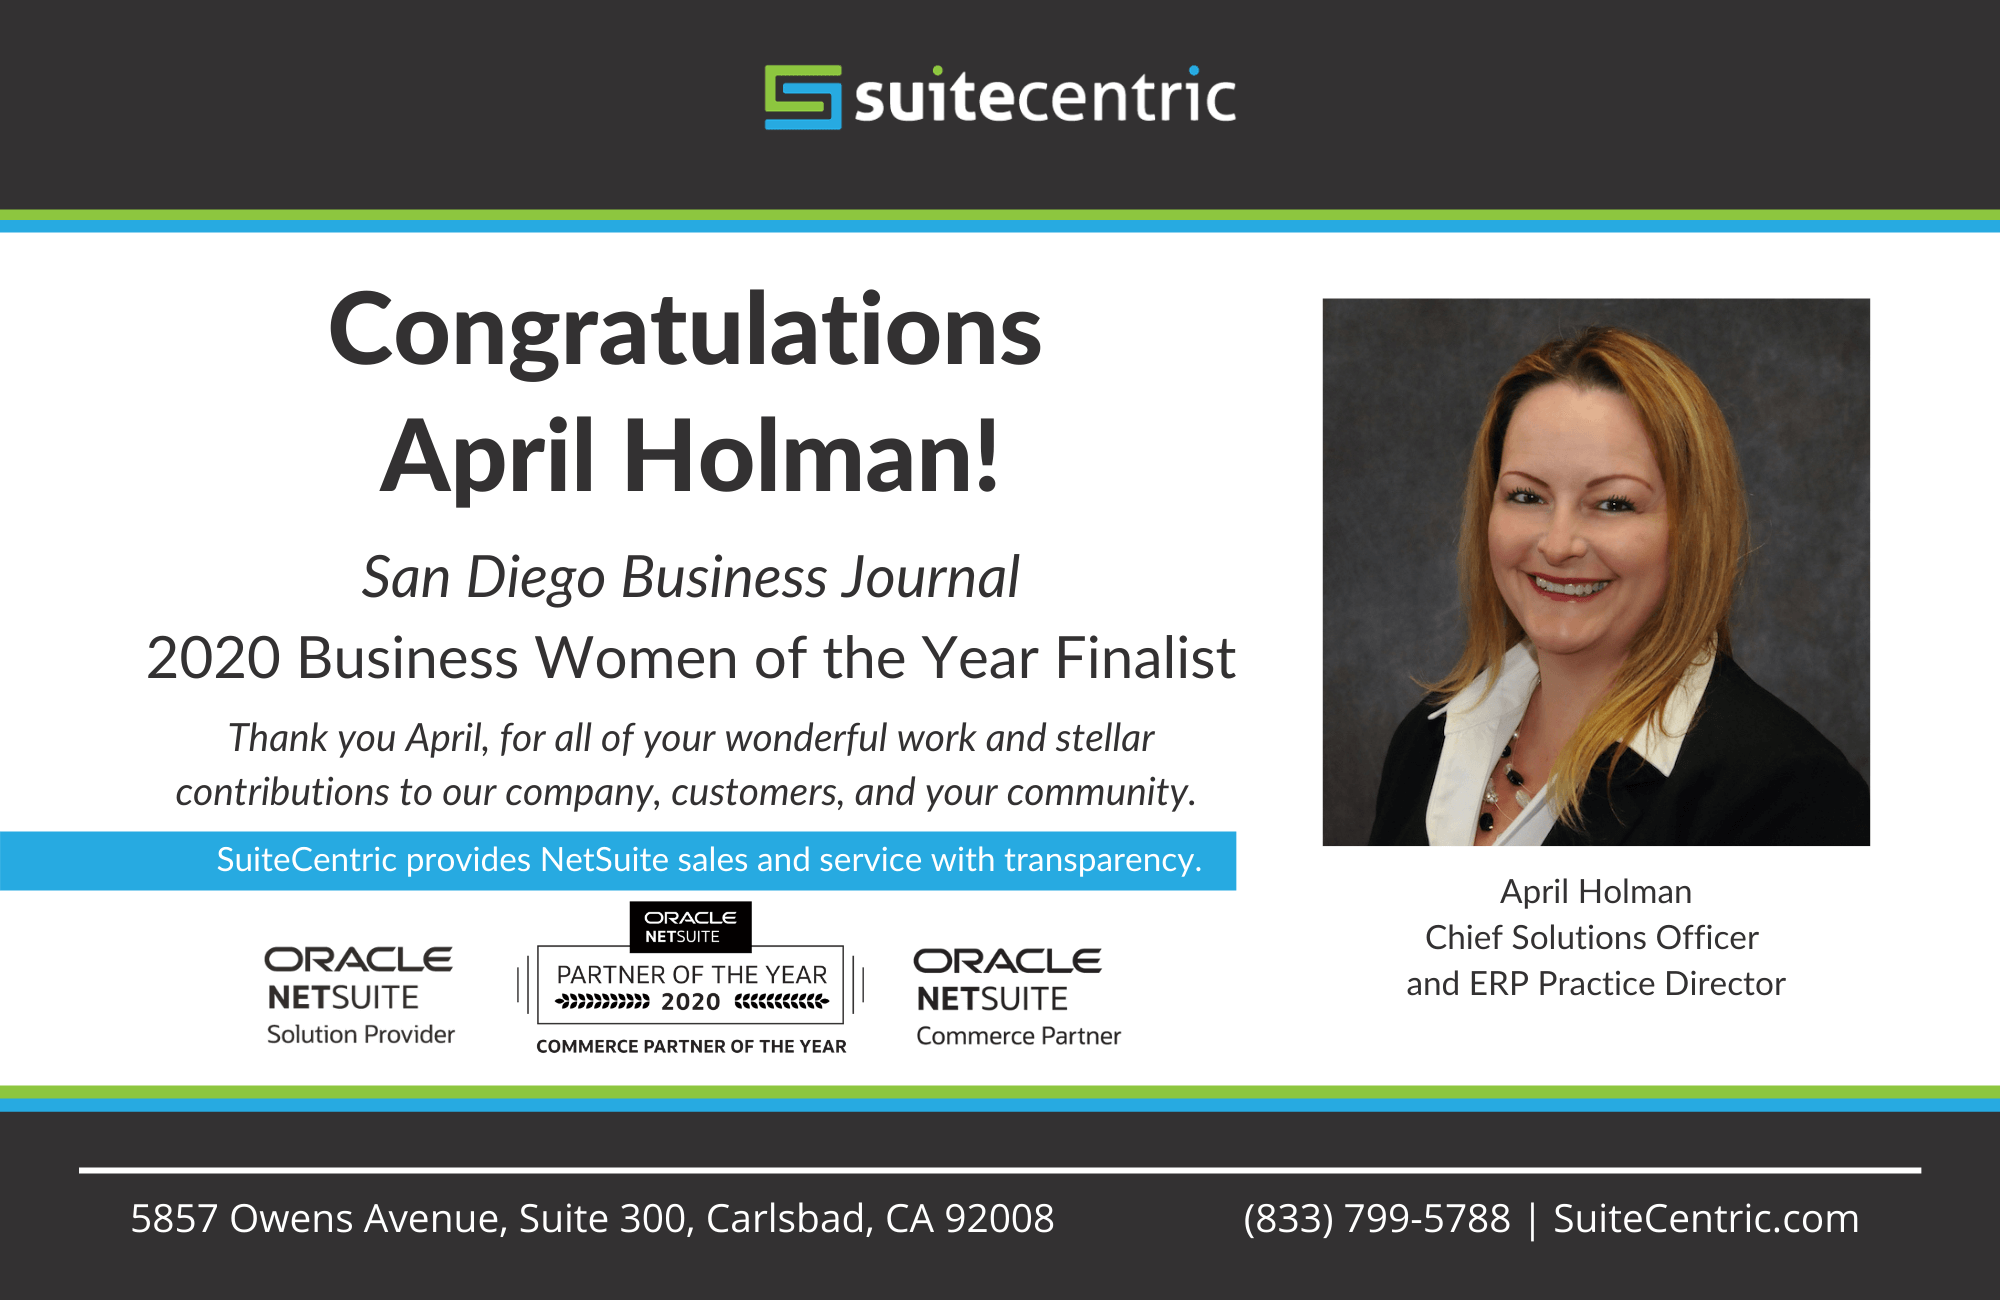 Congratulations to April Holman for being a finalist in the SDBJ Business Women of the Year Awards in 2020